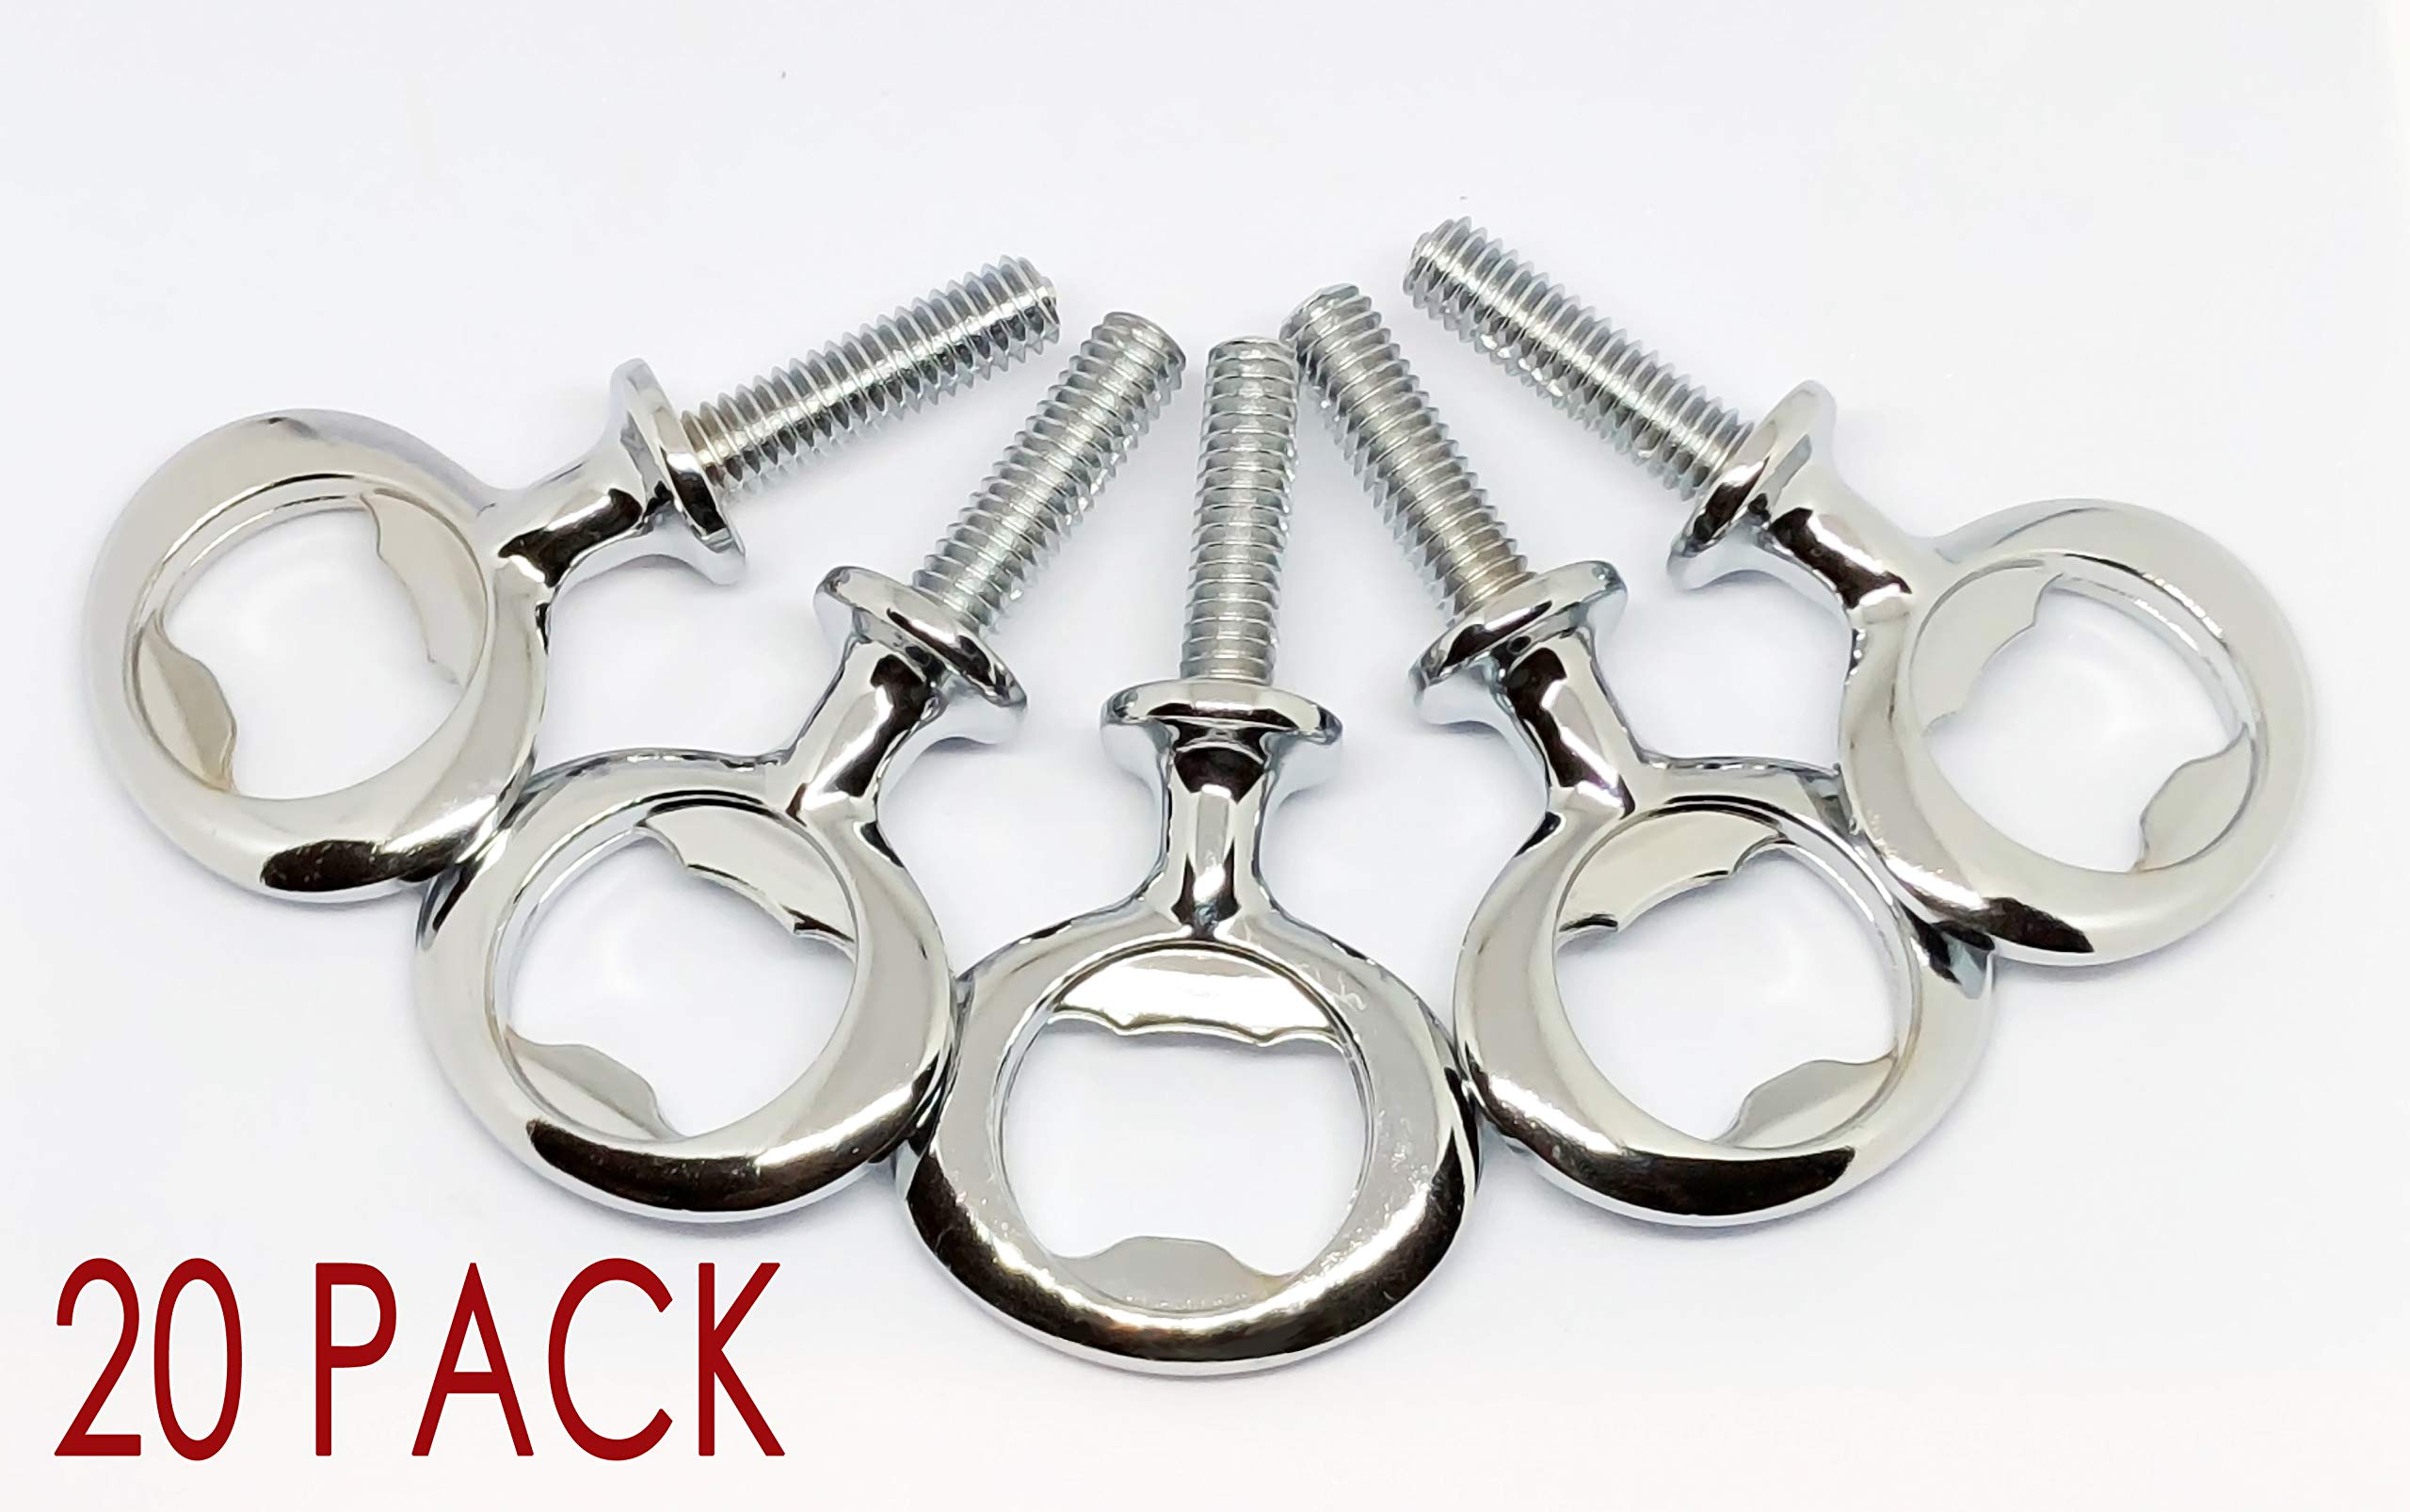 Chrome Bottle Opener Hardware Kit for Wood Turning 20 Pack by C and C Stock